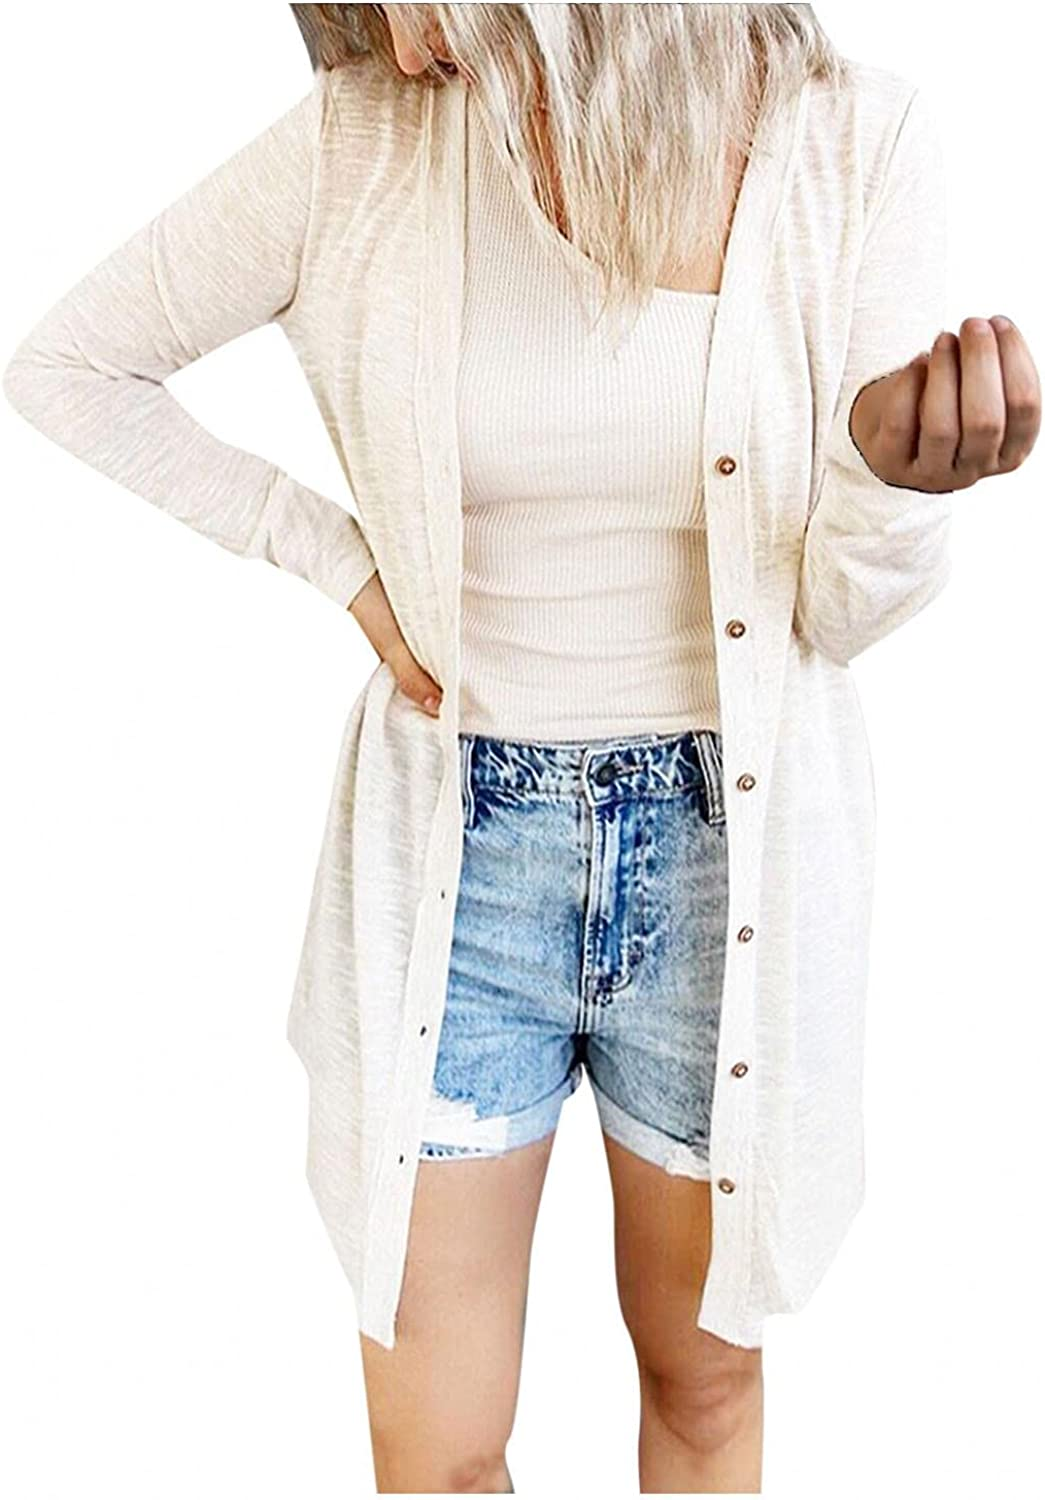 Cardigan Sweaters for Women,2omens Open Front Button Down Long Sleeve Outwear Tops Hoodies Fly Away Sweater